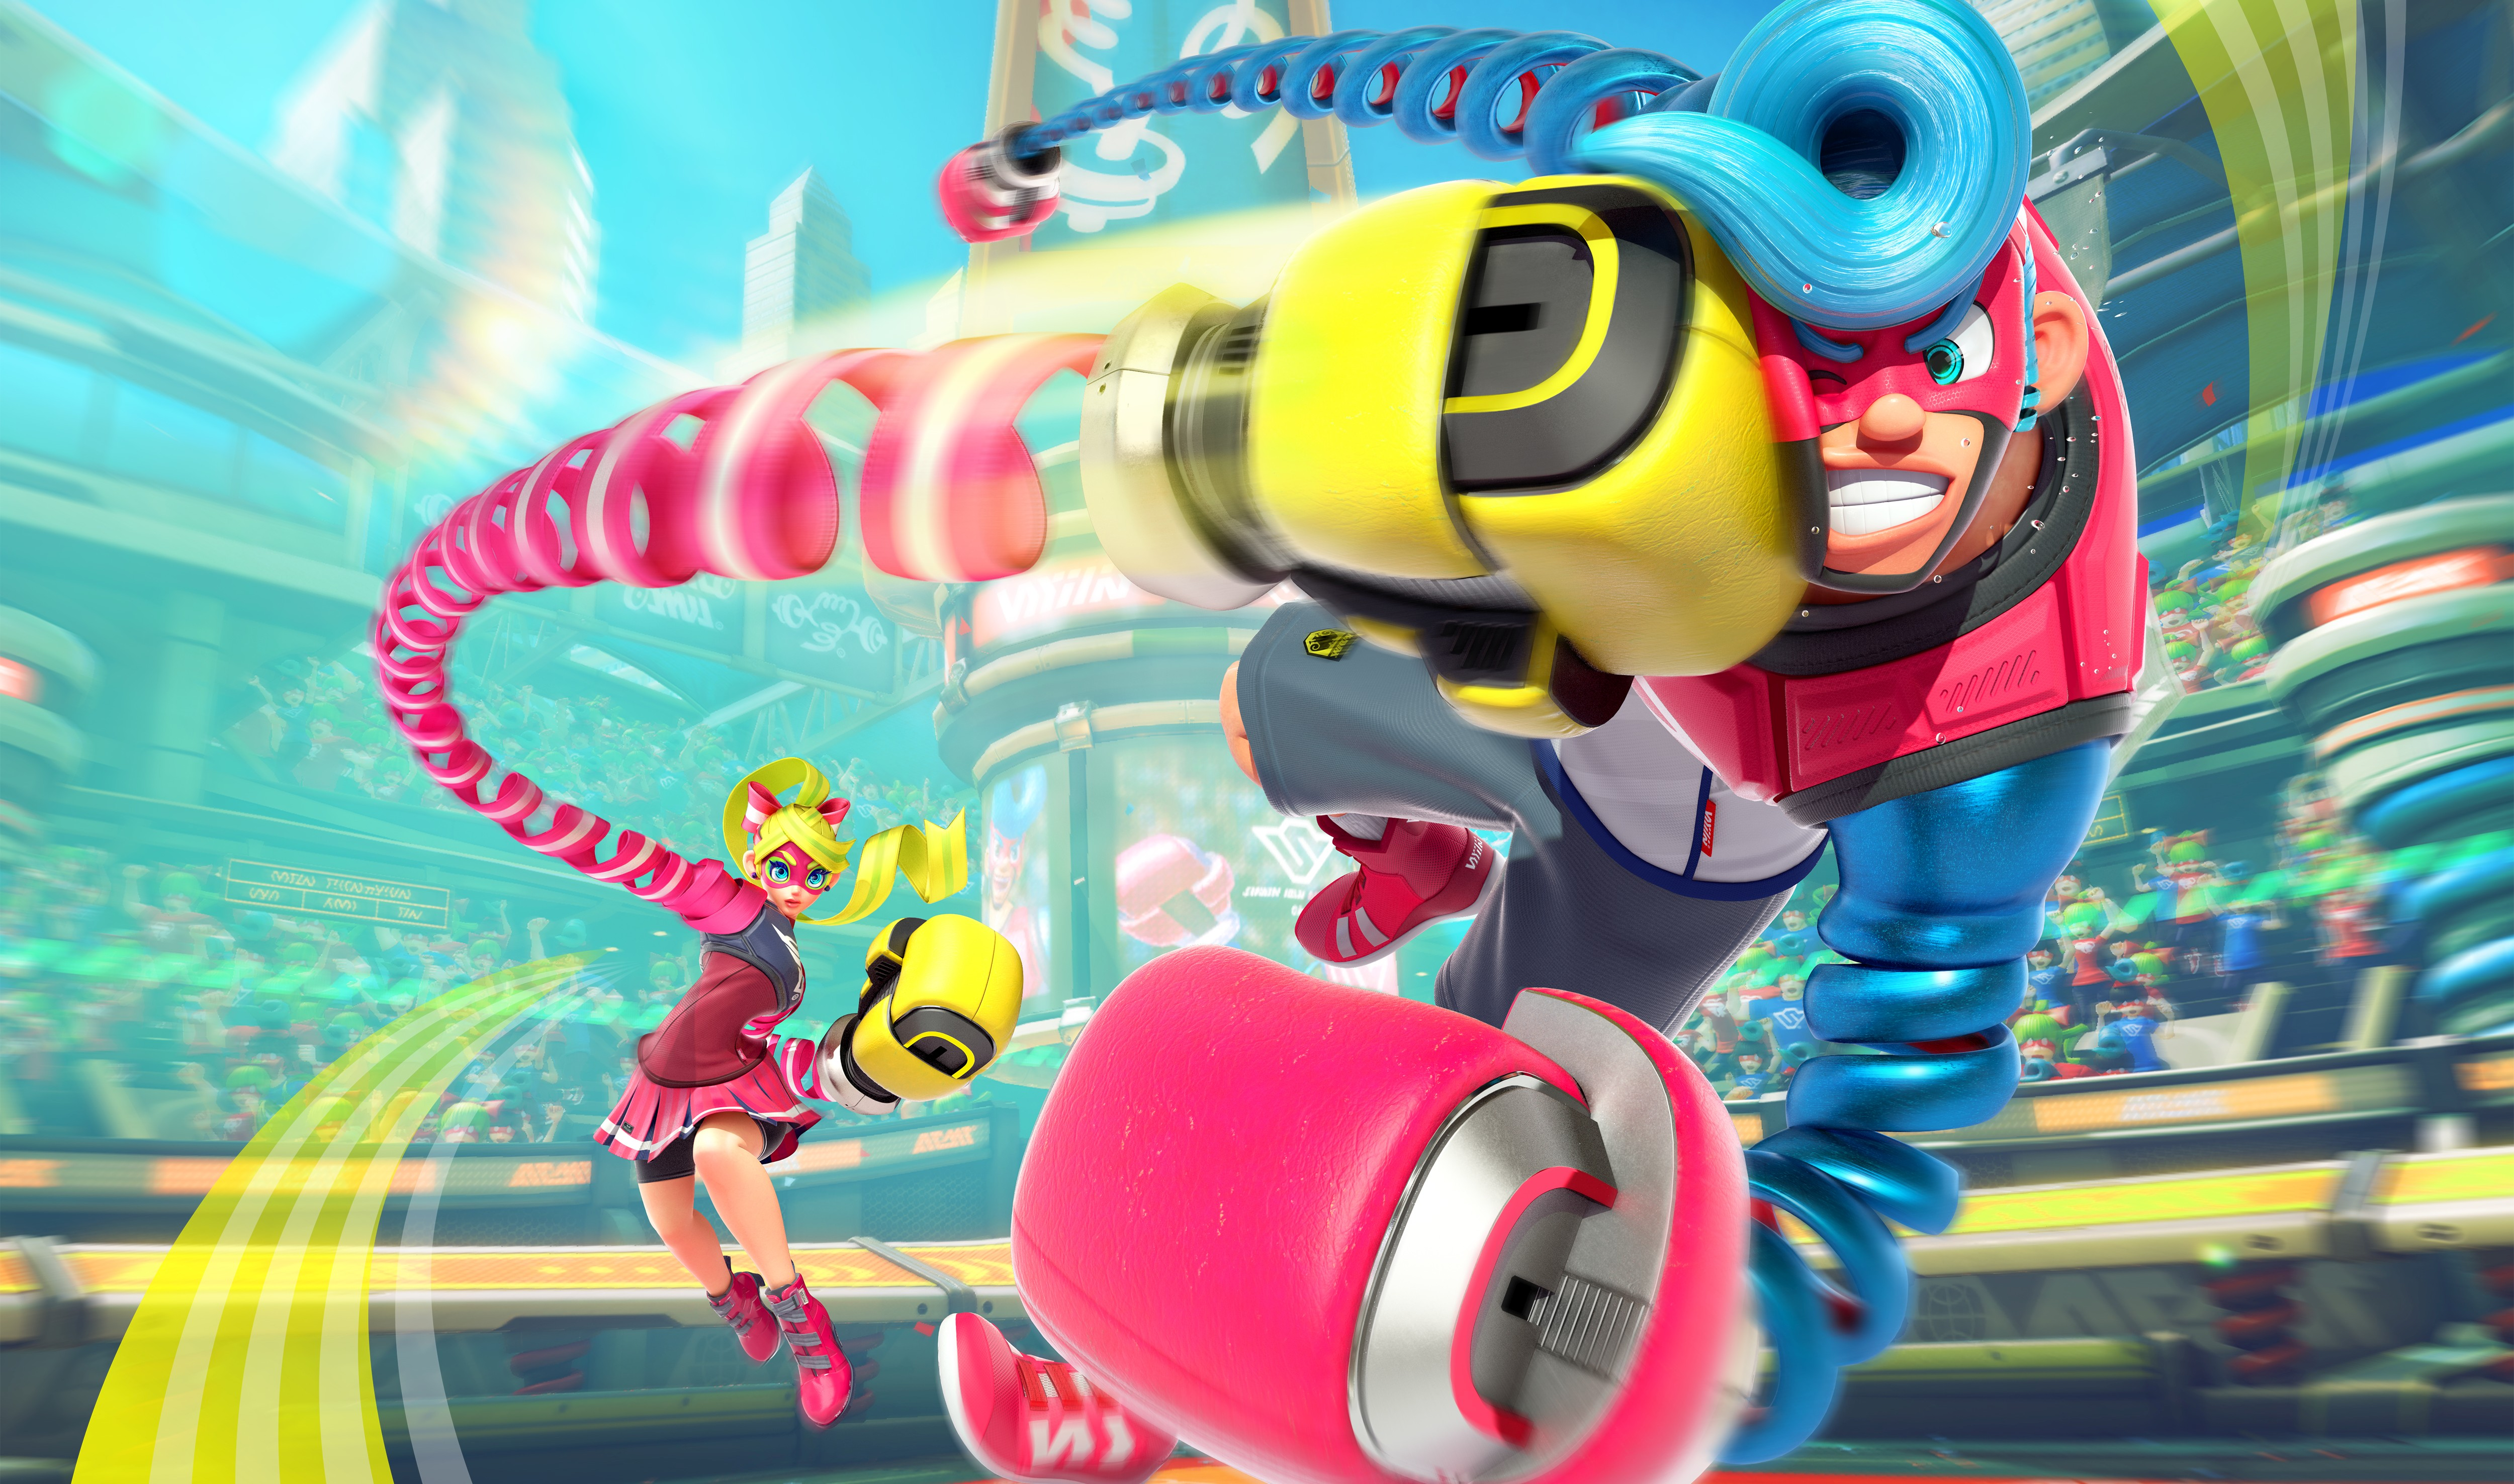 Nintendo to focus on Splatoon 2 and ARMS in upcoming Direct